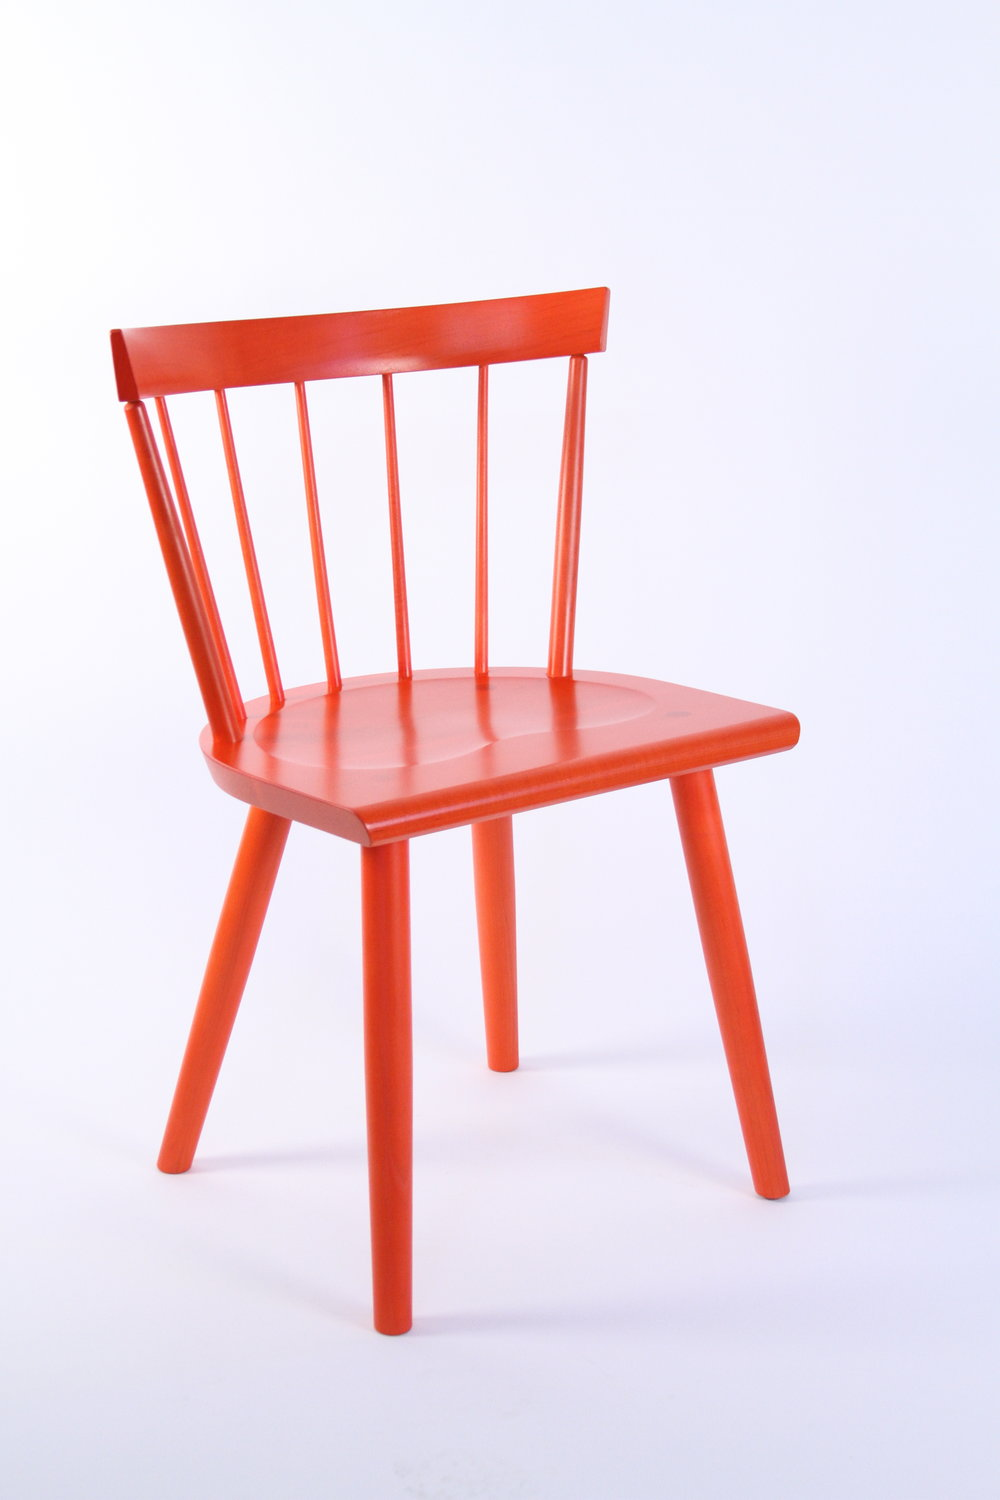 O&G Studio Colt Low Back Lowback Windsor Contemporary Dining Chair Side Chair Persimmon Red Orange Electric Design Stain on Ash